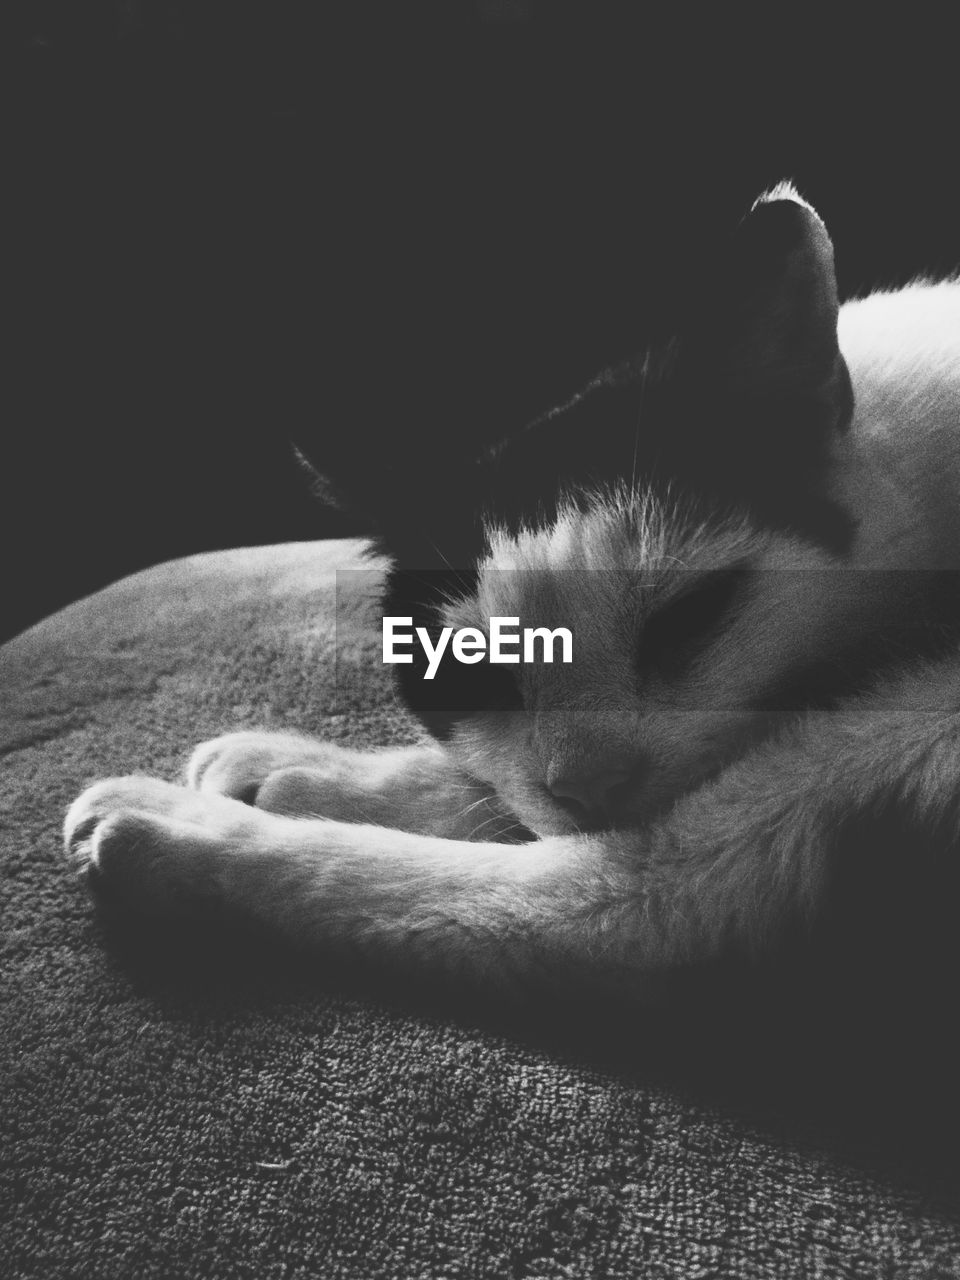 domestic cat, pets, feline, domestic animals, mammal, sleeping, cat, one animal, animal themes, indoors, relaxation, eyes closed, lying down, paw, no people, close-up, day